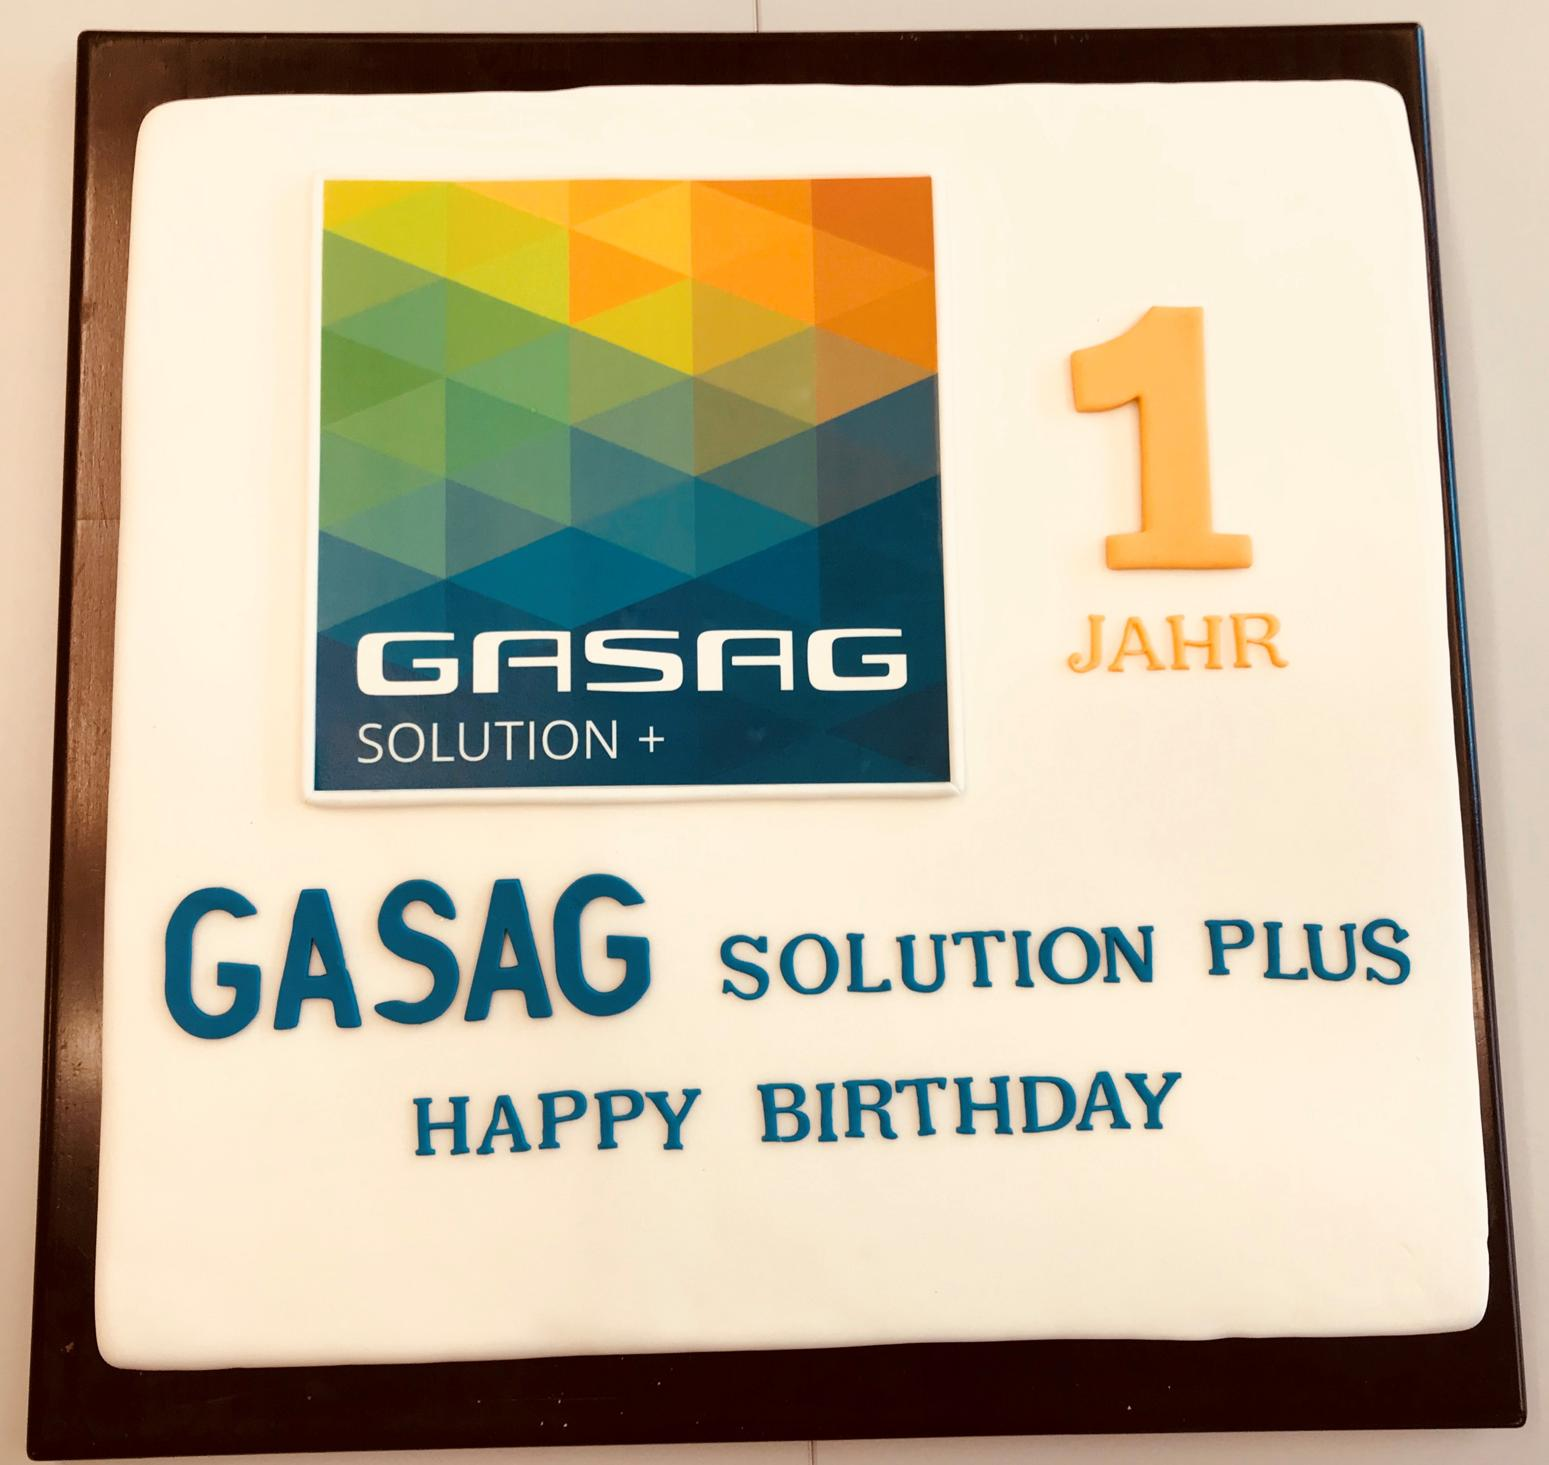 Happy 1st Birthday GASAG Solution Plus